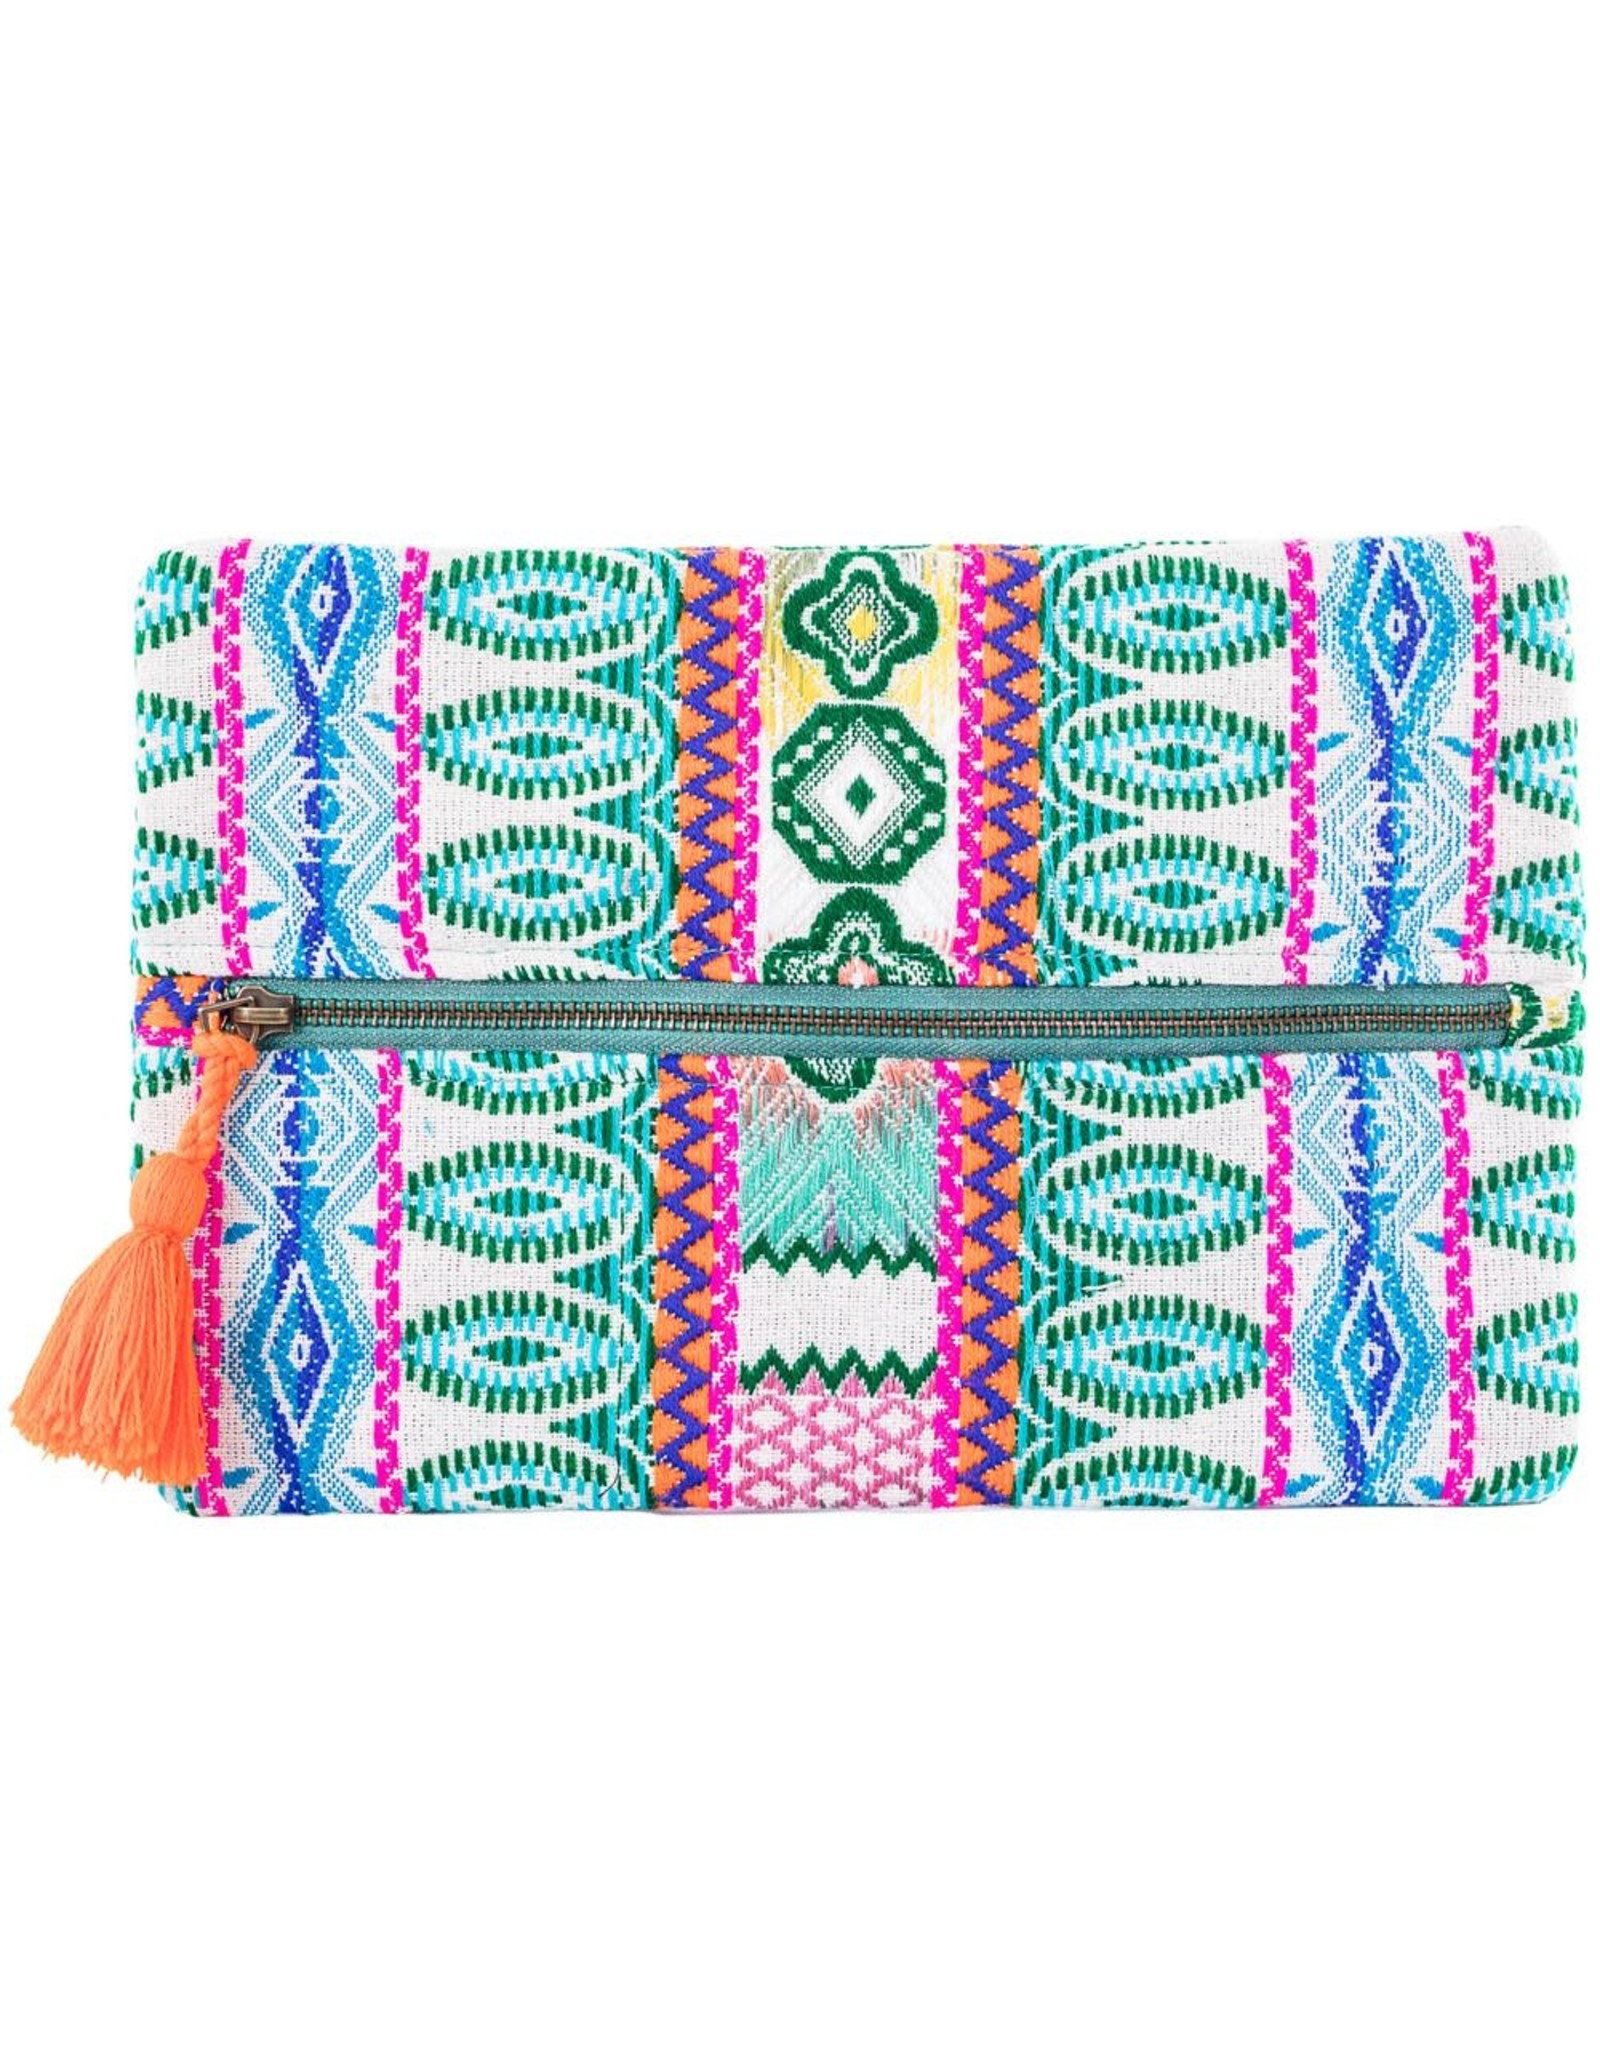 TLC Green Make up Bag or Clutch